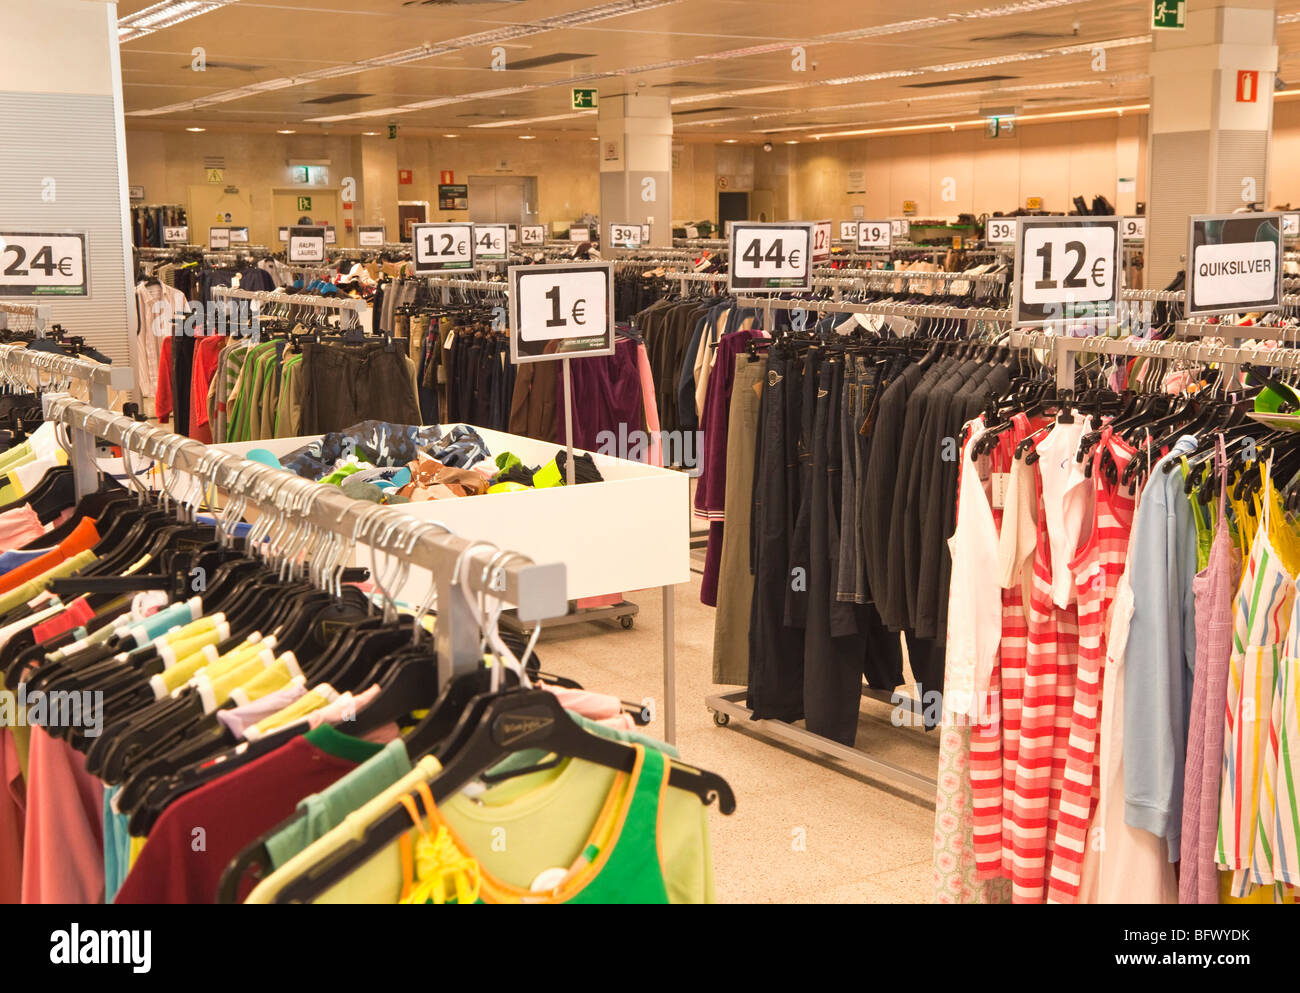 bargain clothing for sale in supercor outlet of el corte